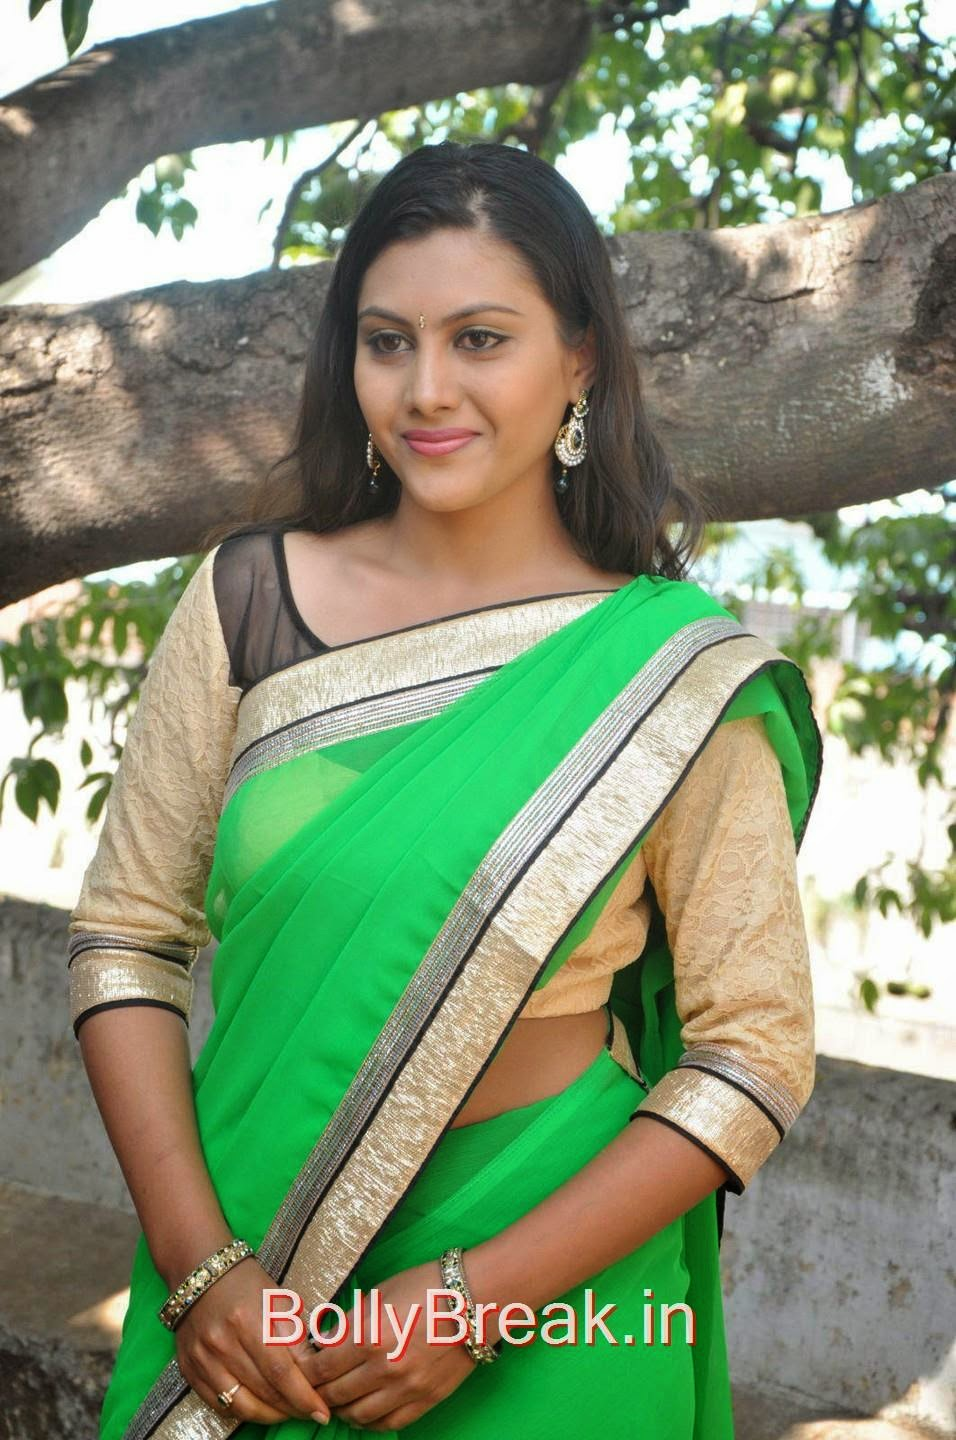 Priyanka Pictures, Hot Pics Of Priyanka In Green Saree from SS Art Productions Production No 1 Movie